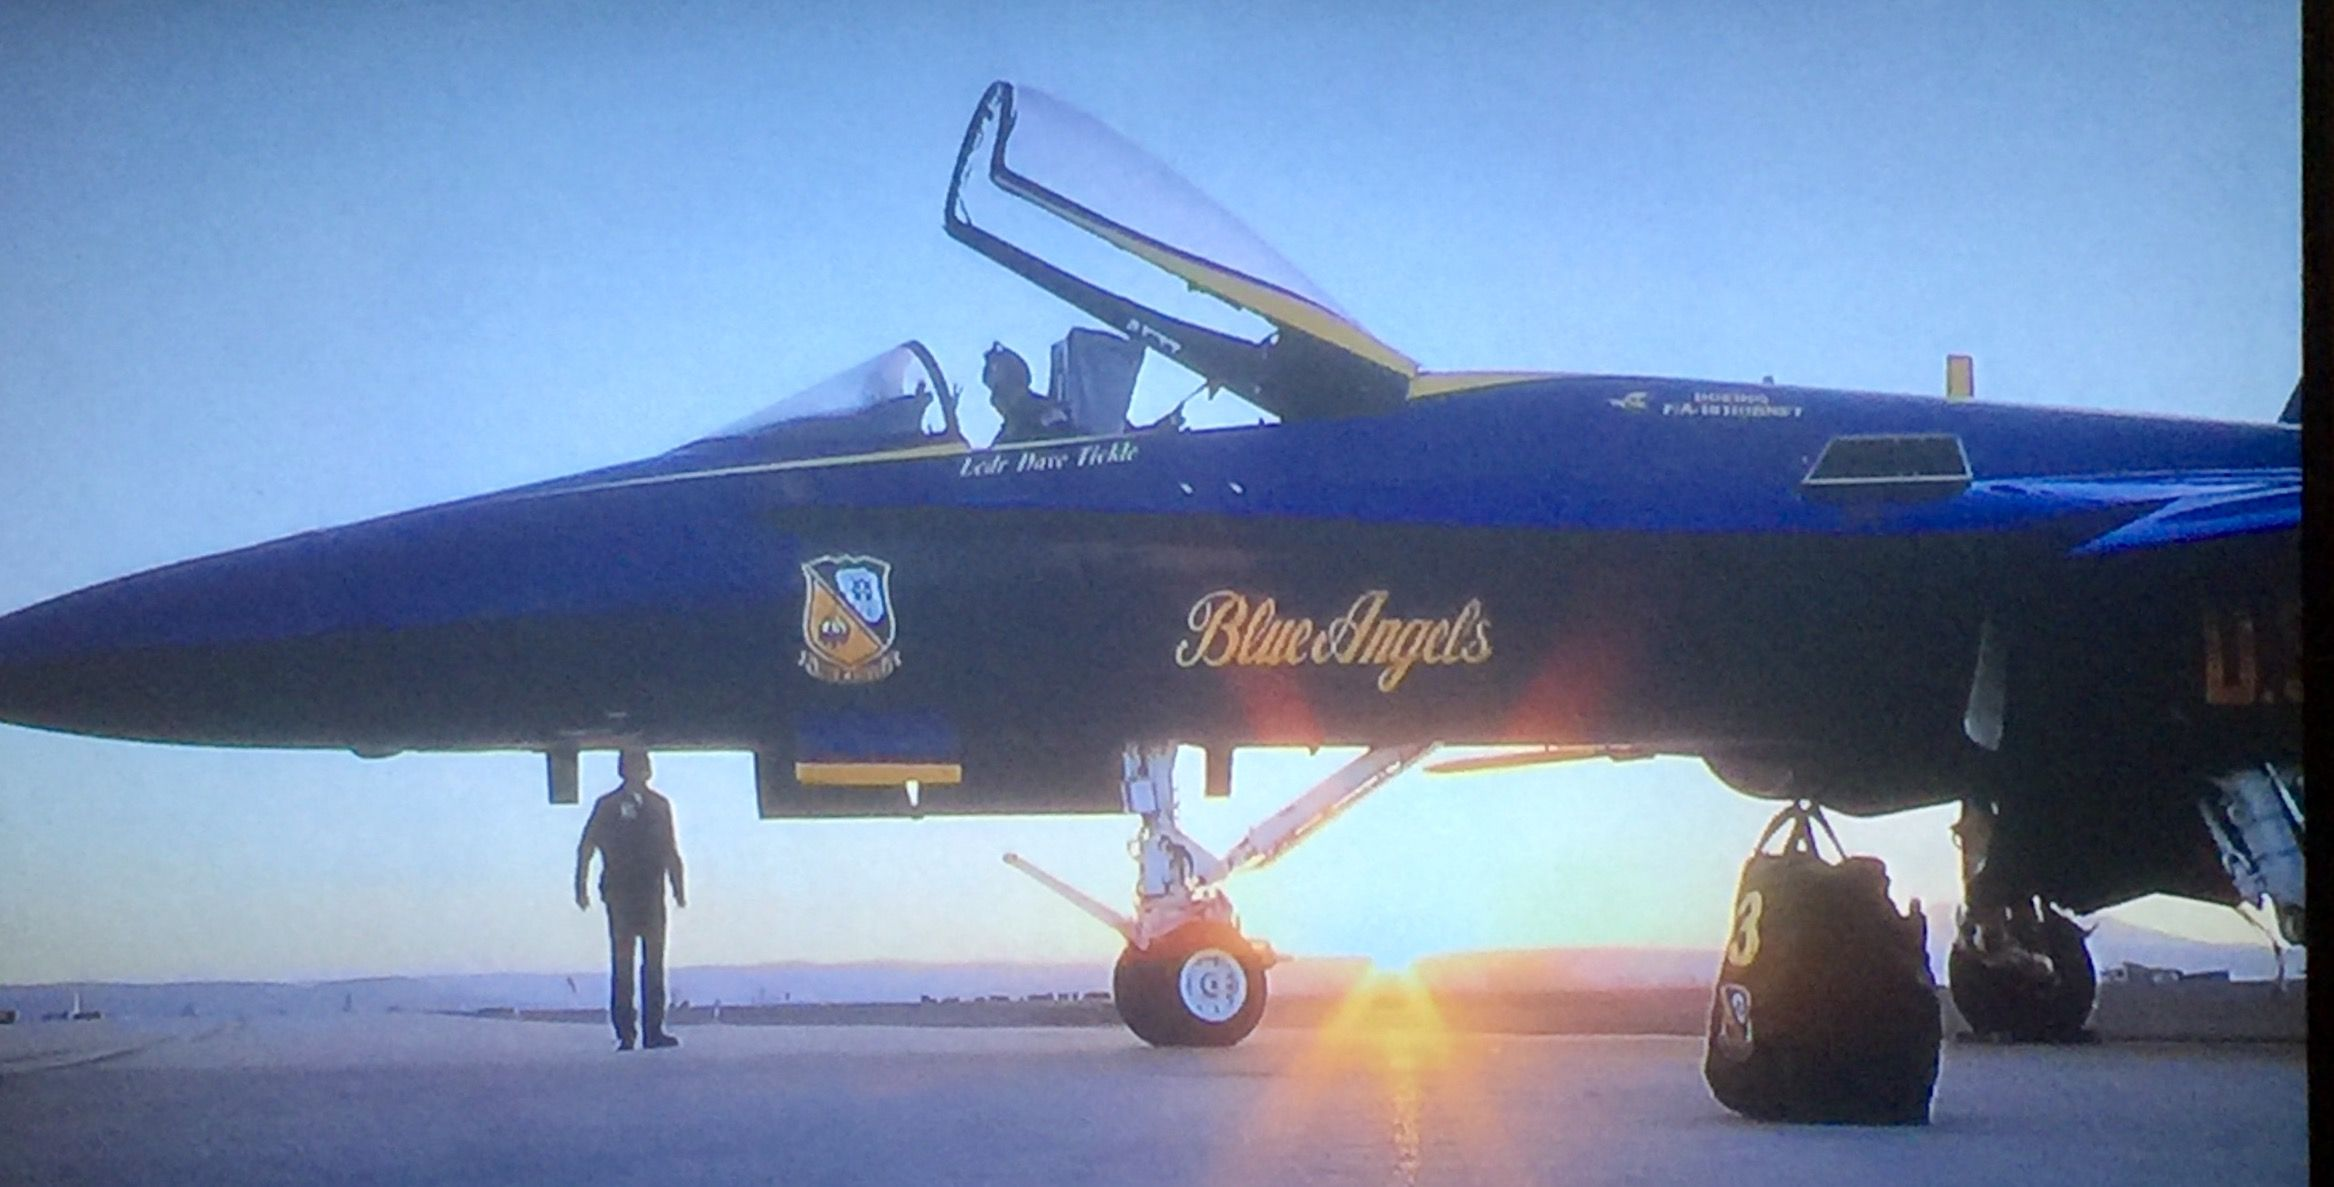 Image by Paulie on Blue Angels Blue angels, Fighter jets